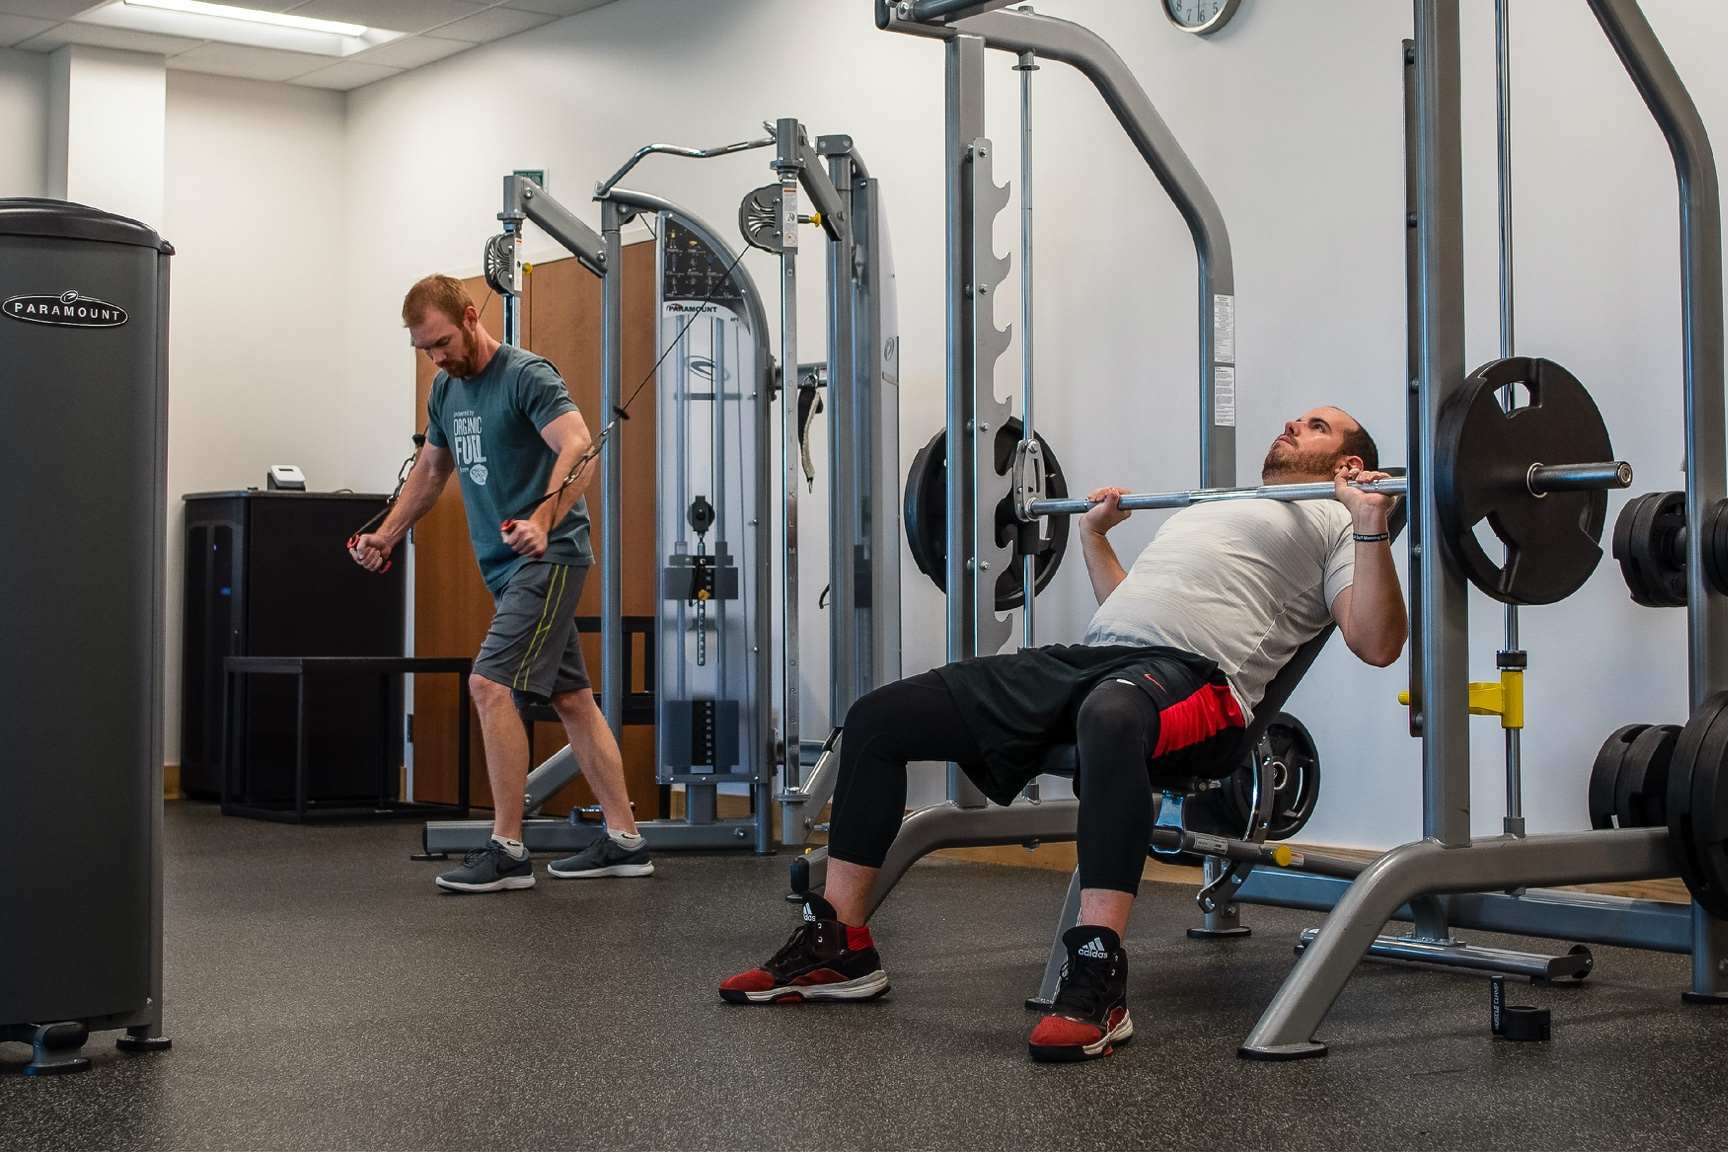 Two men work out on gym equipment.